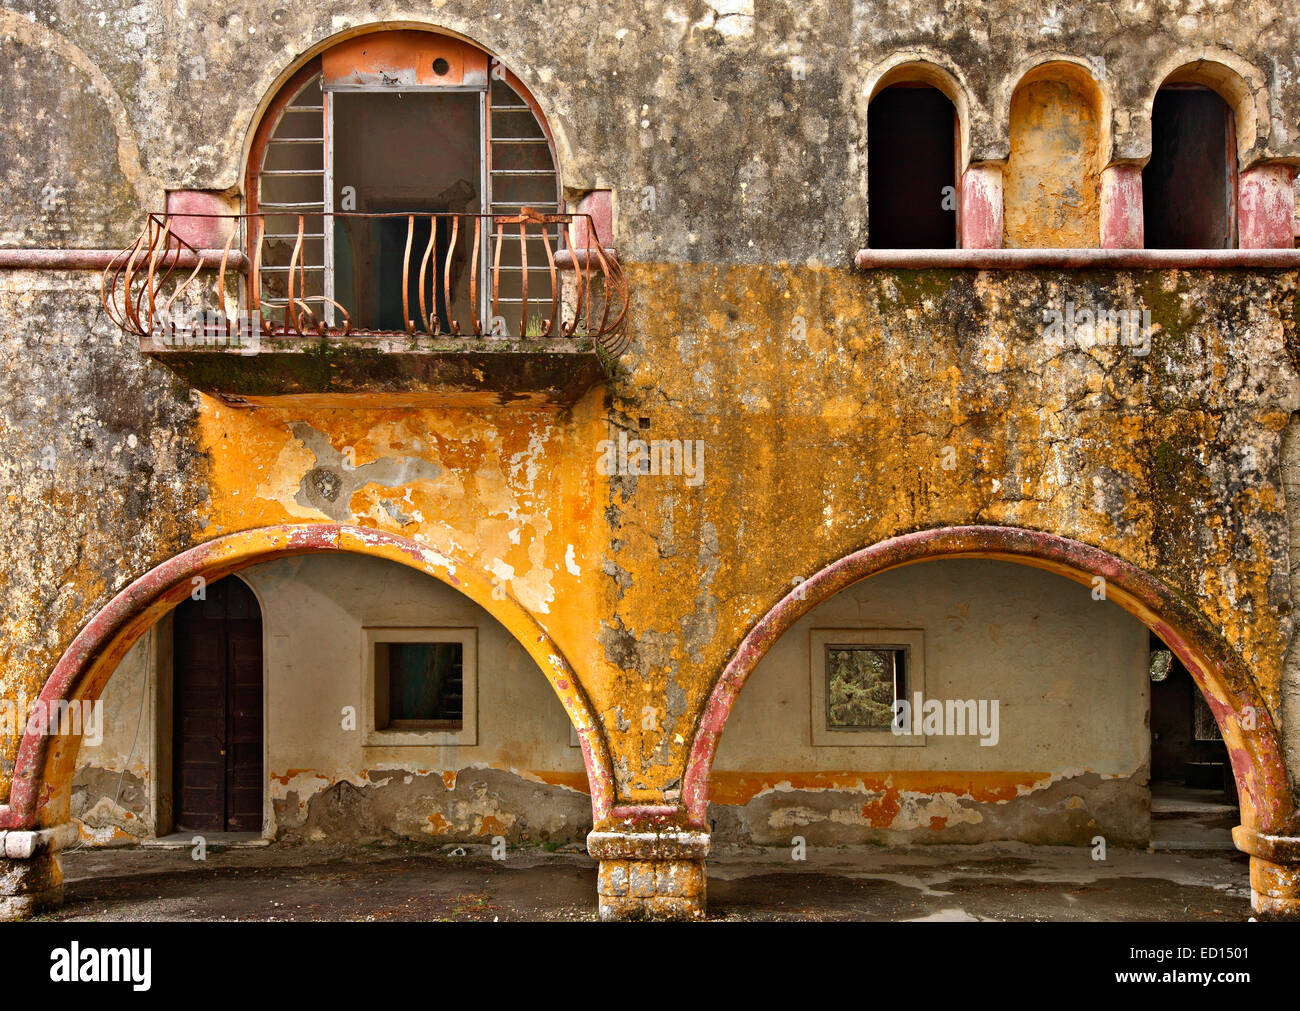 At the 'forgotten' village of Eleousa, known as one of the 'Italian' villages of Rhodes island, - Stock Image